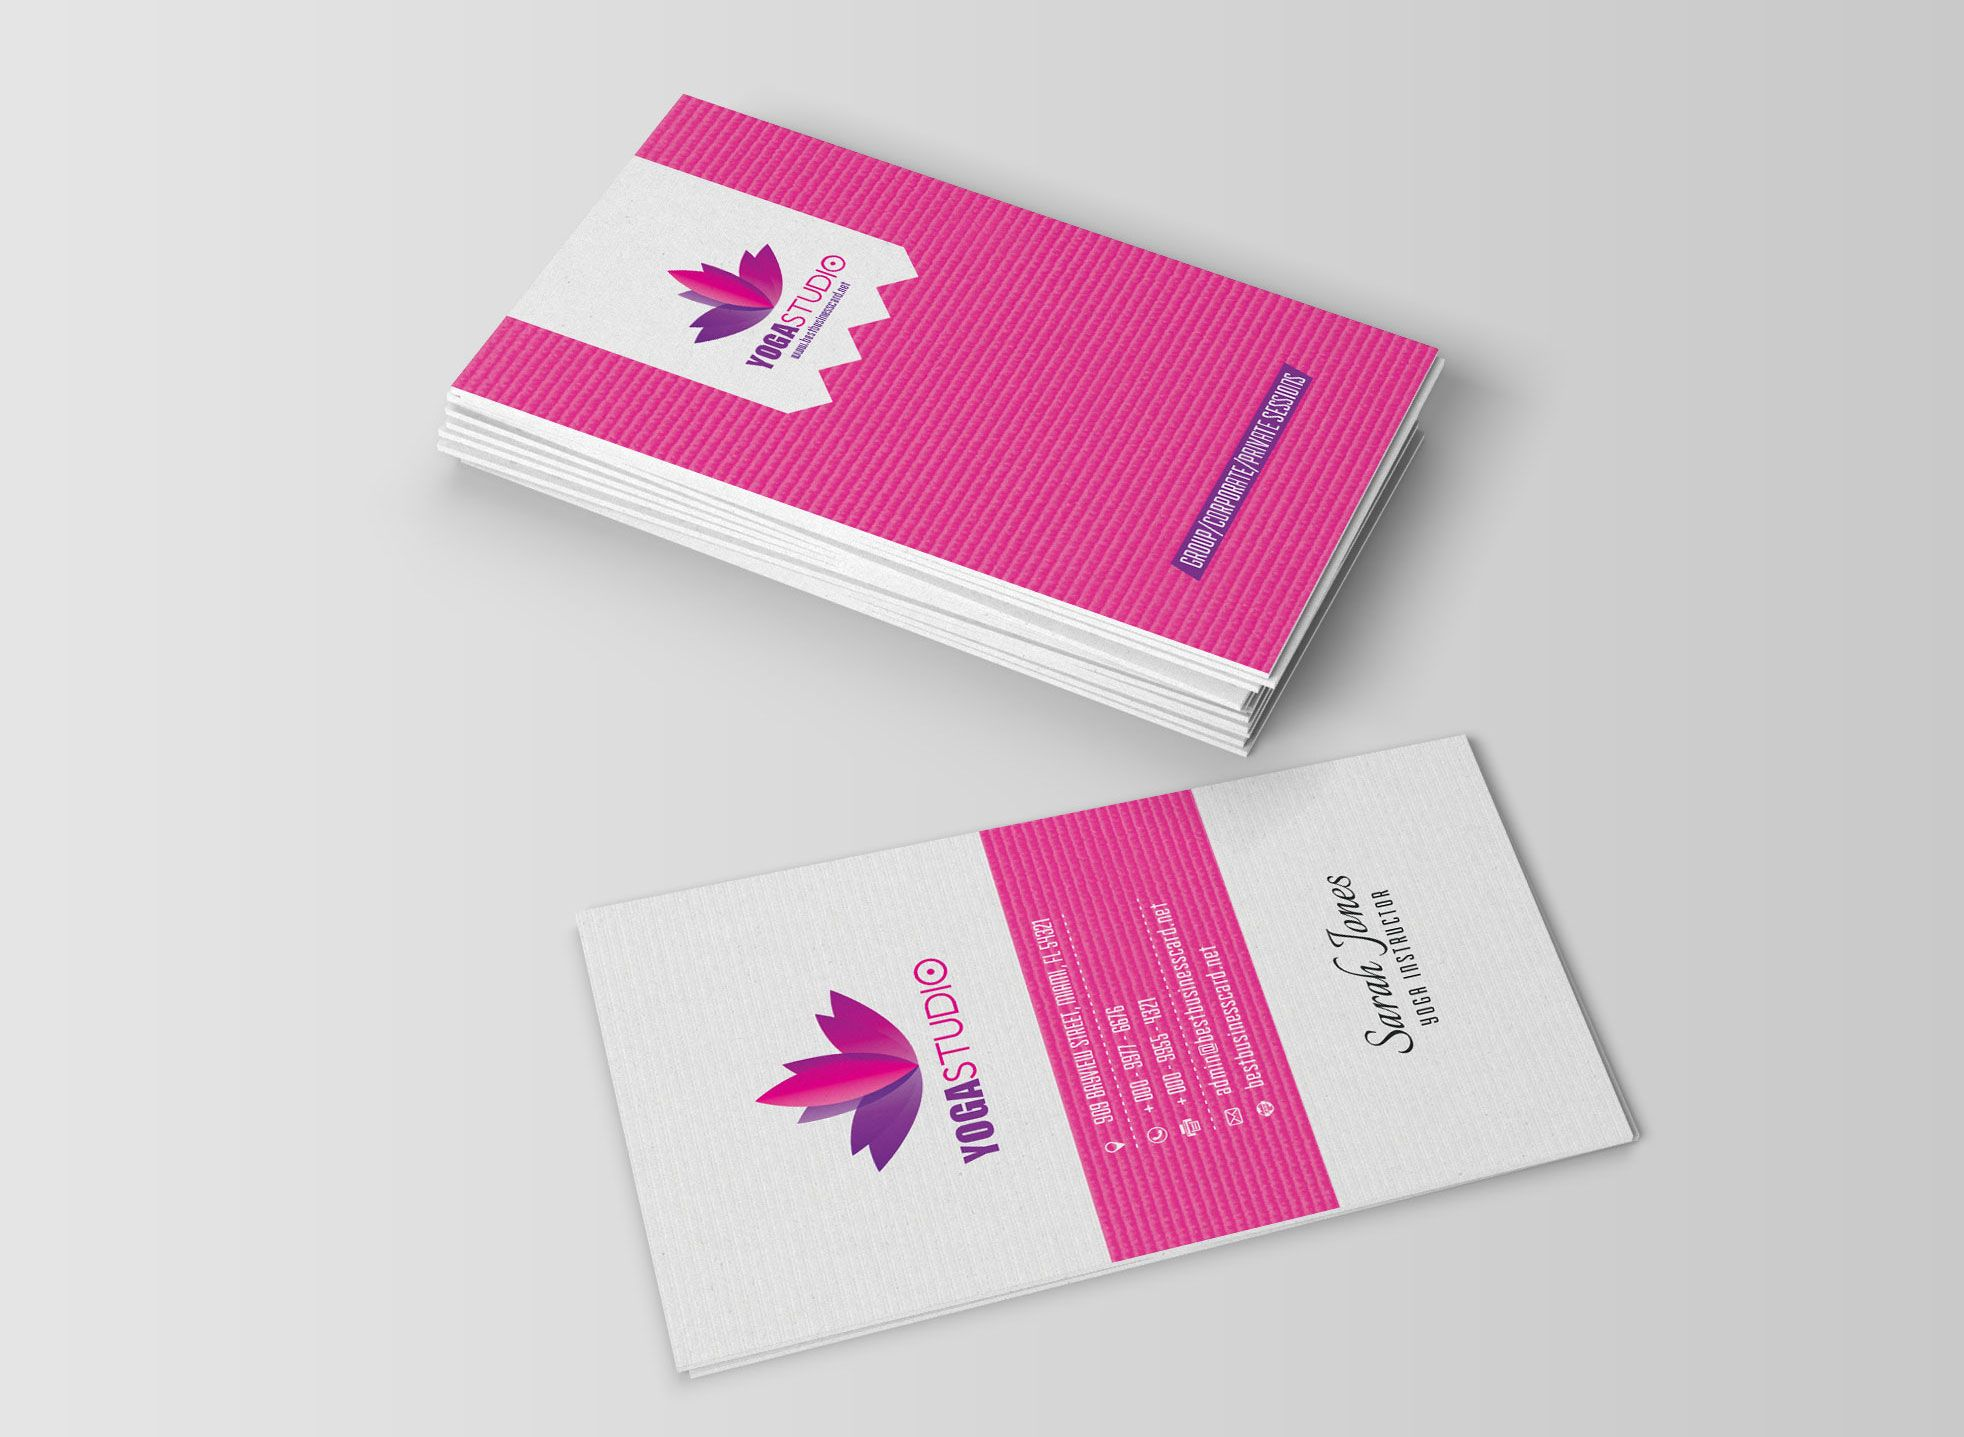 Yoga Business Cards: Free PSD Templates | card | Pinterest | Psd ...